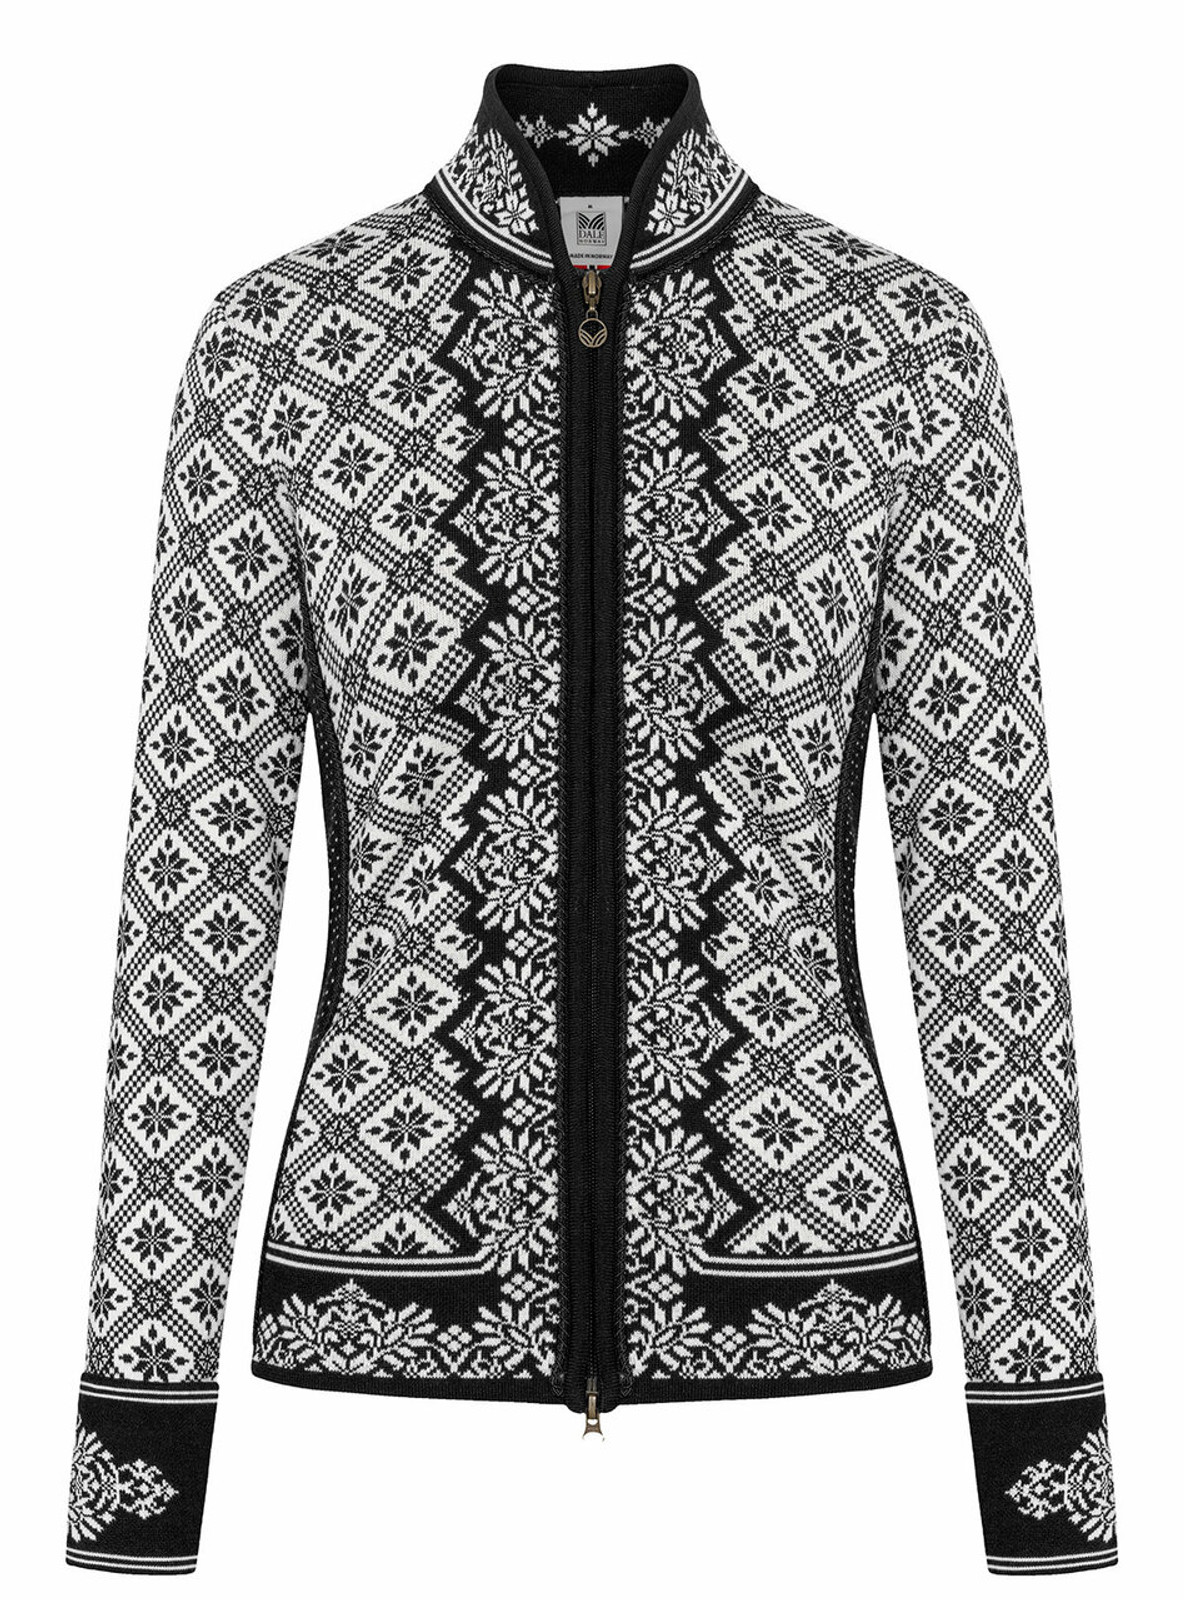 Dale of Norway Christiania Cardigan, Ladies - Black/Off White, 81951-F